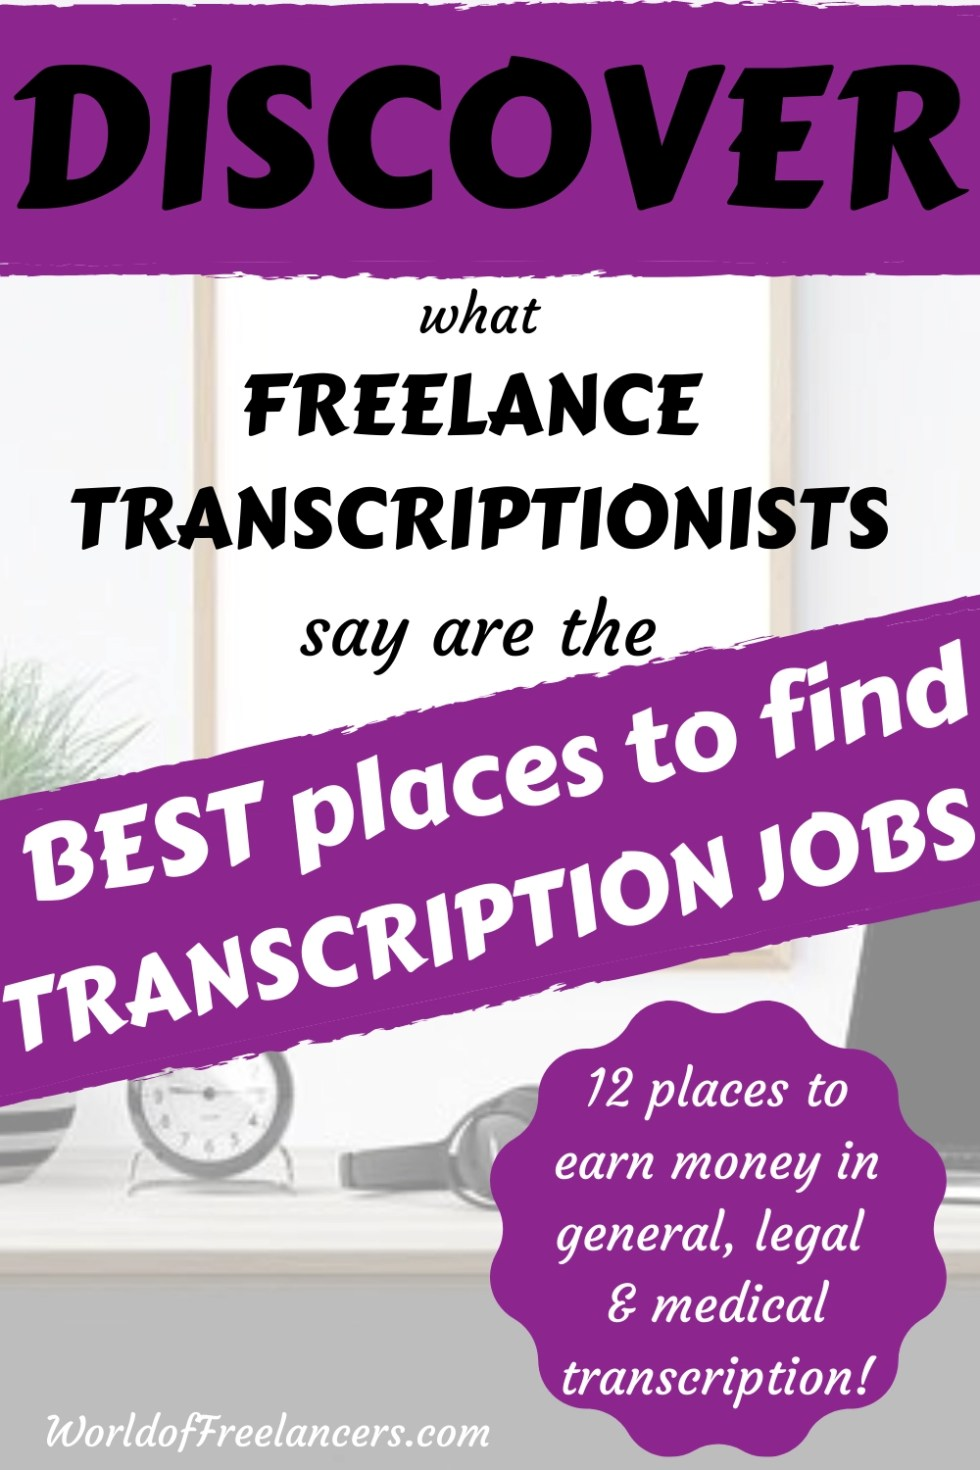 Simple white work space with computer and transcription headphones Pinterest image with text saying discover what freelance transcriptionists say are the best places to find transcription jobs